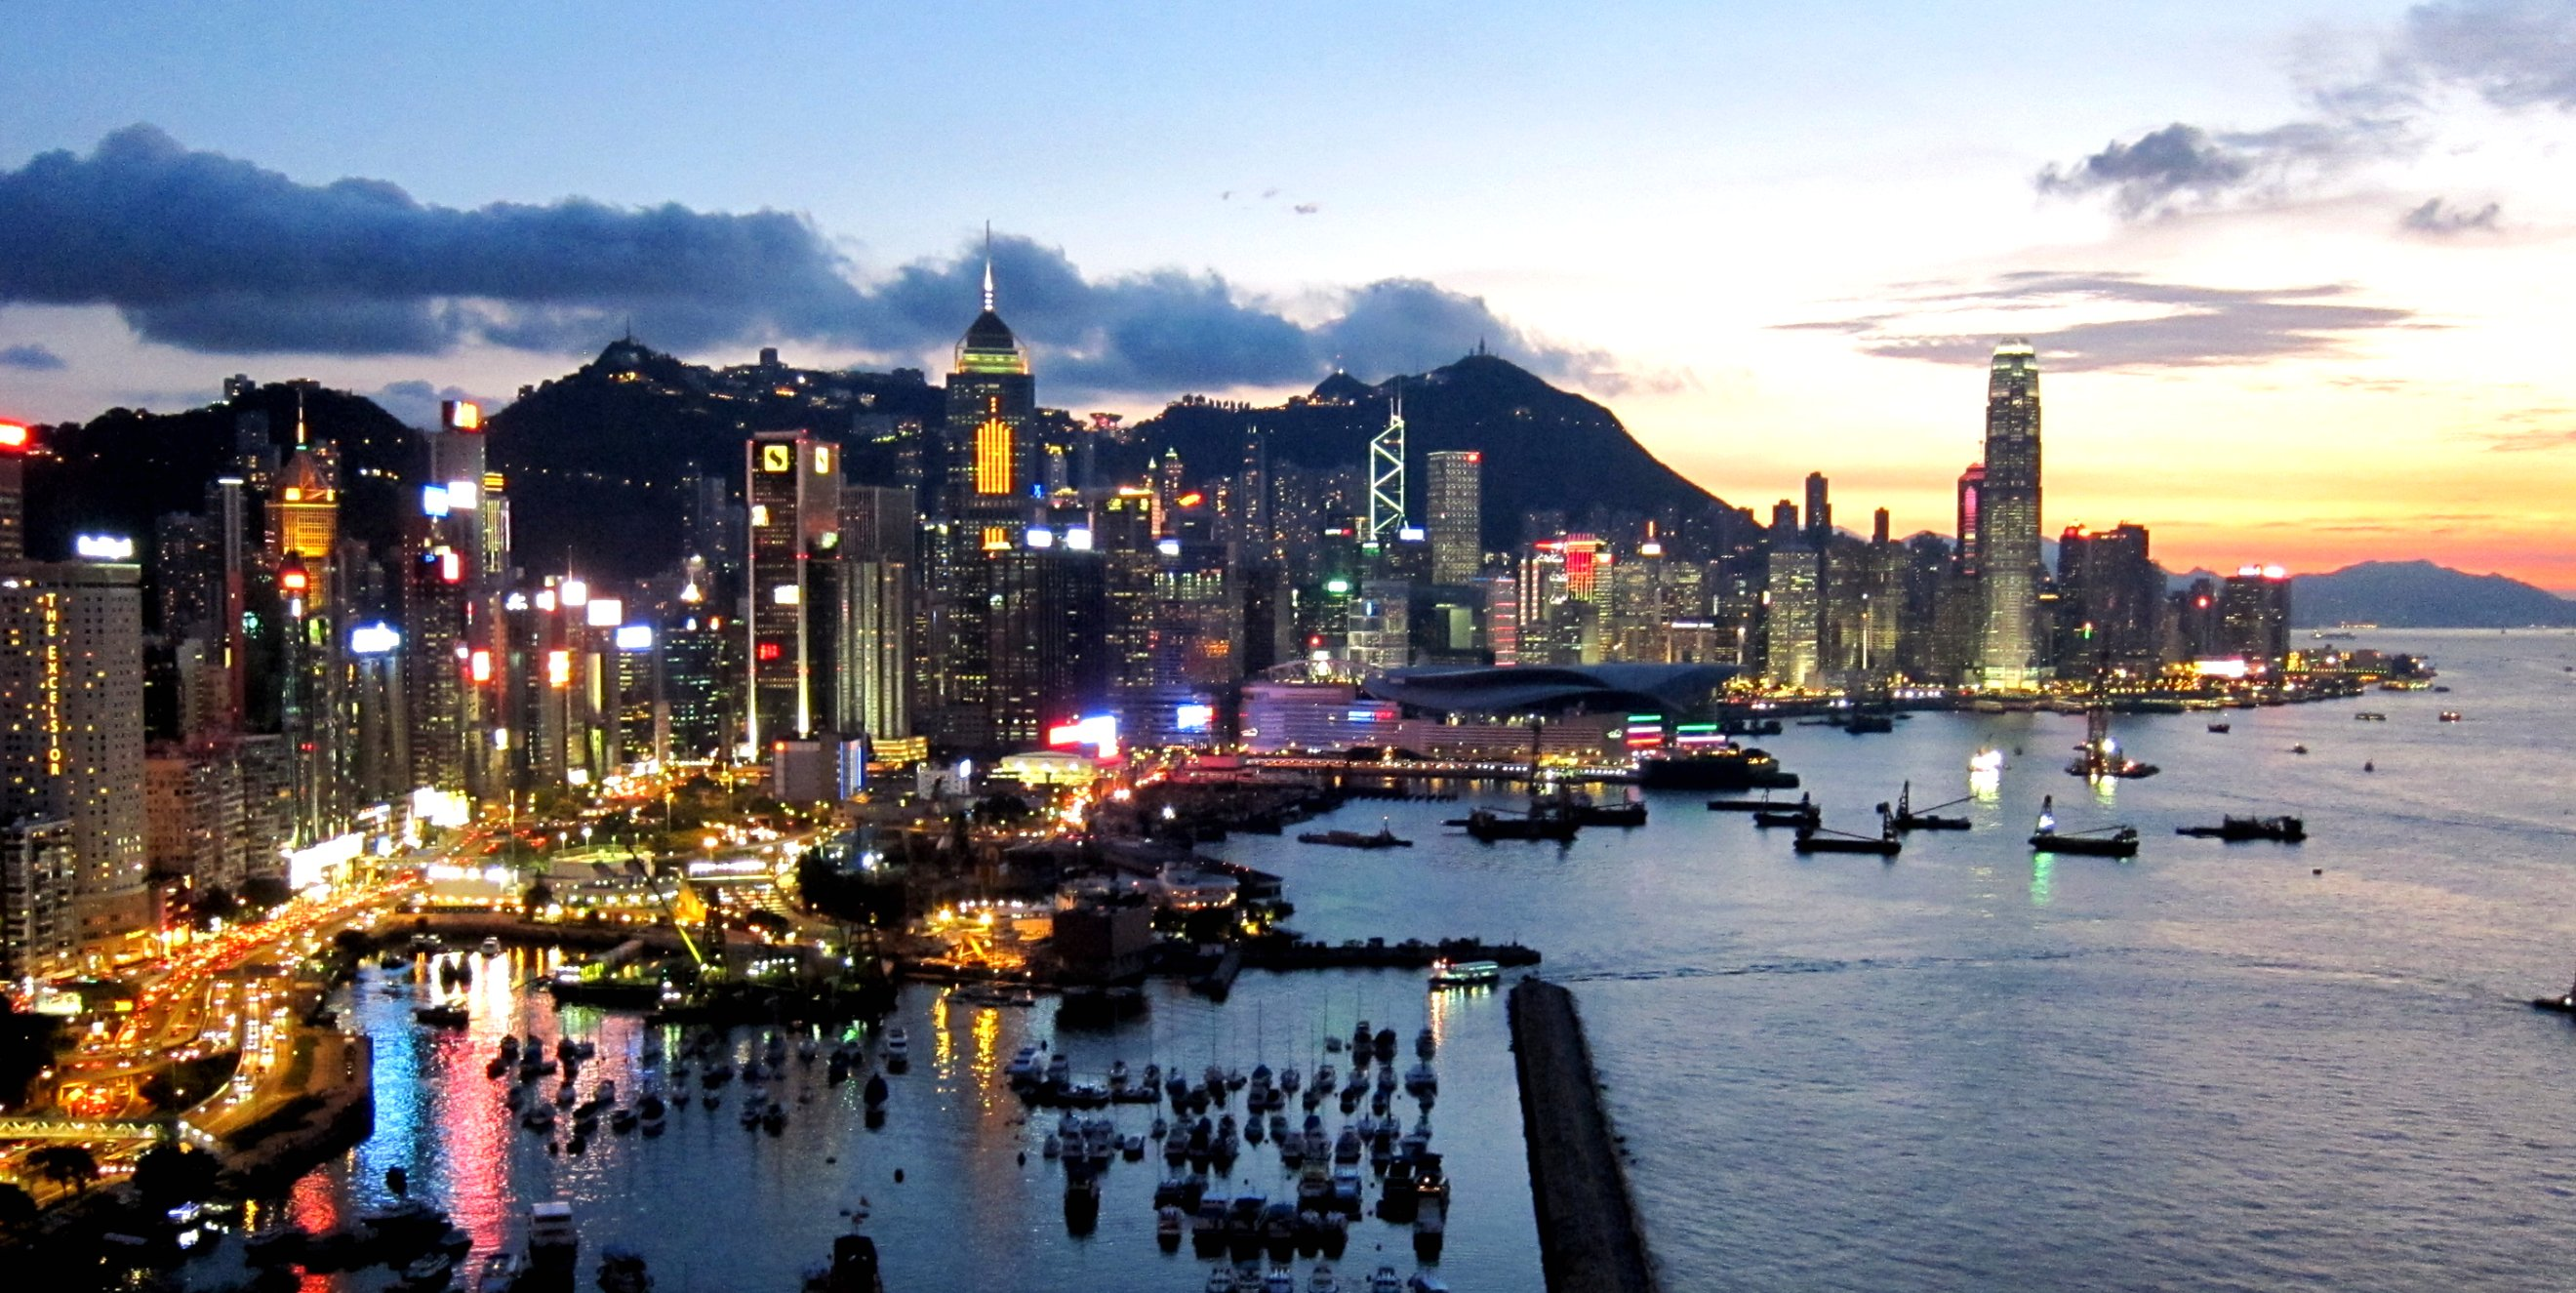 Co-operation Agreement between the Financial Conduct Authority and the Hong Kong Monetary Authority